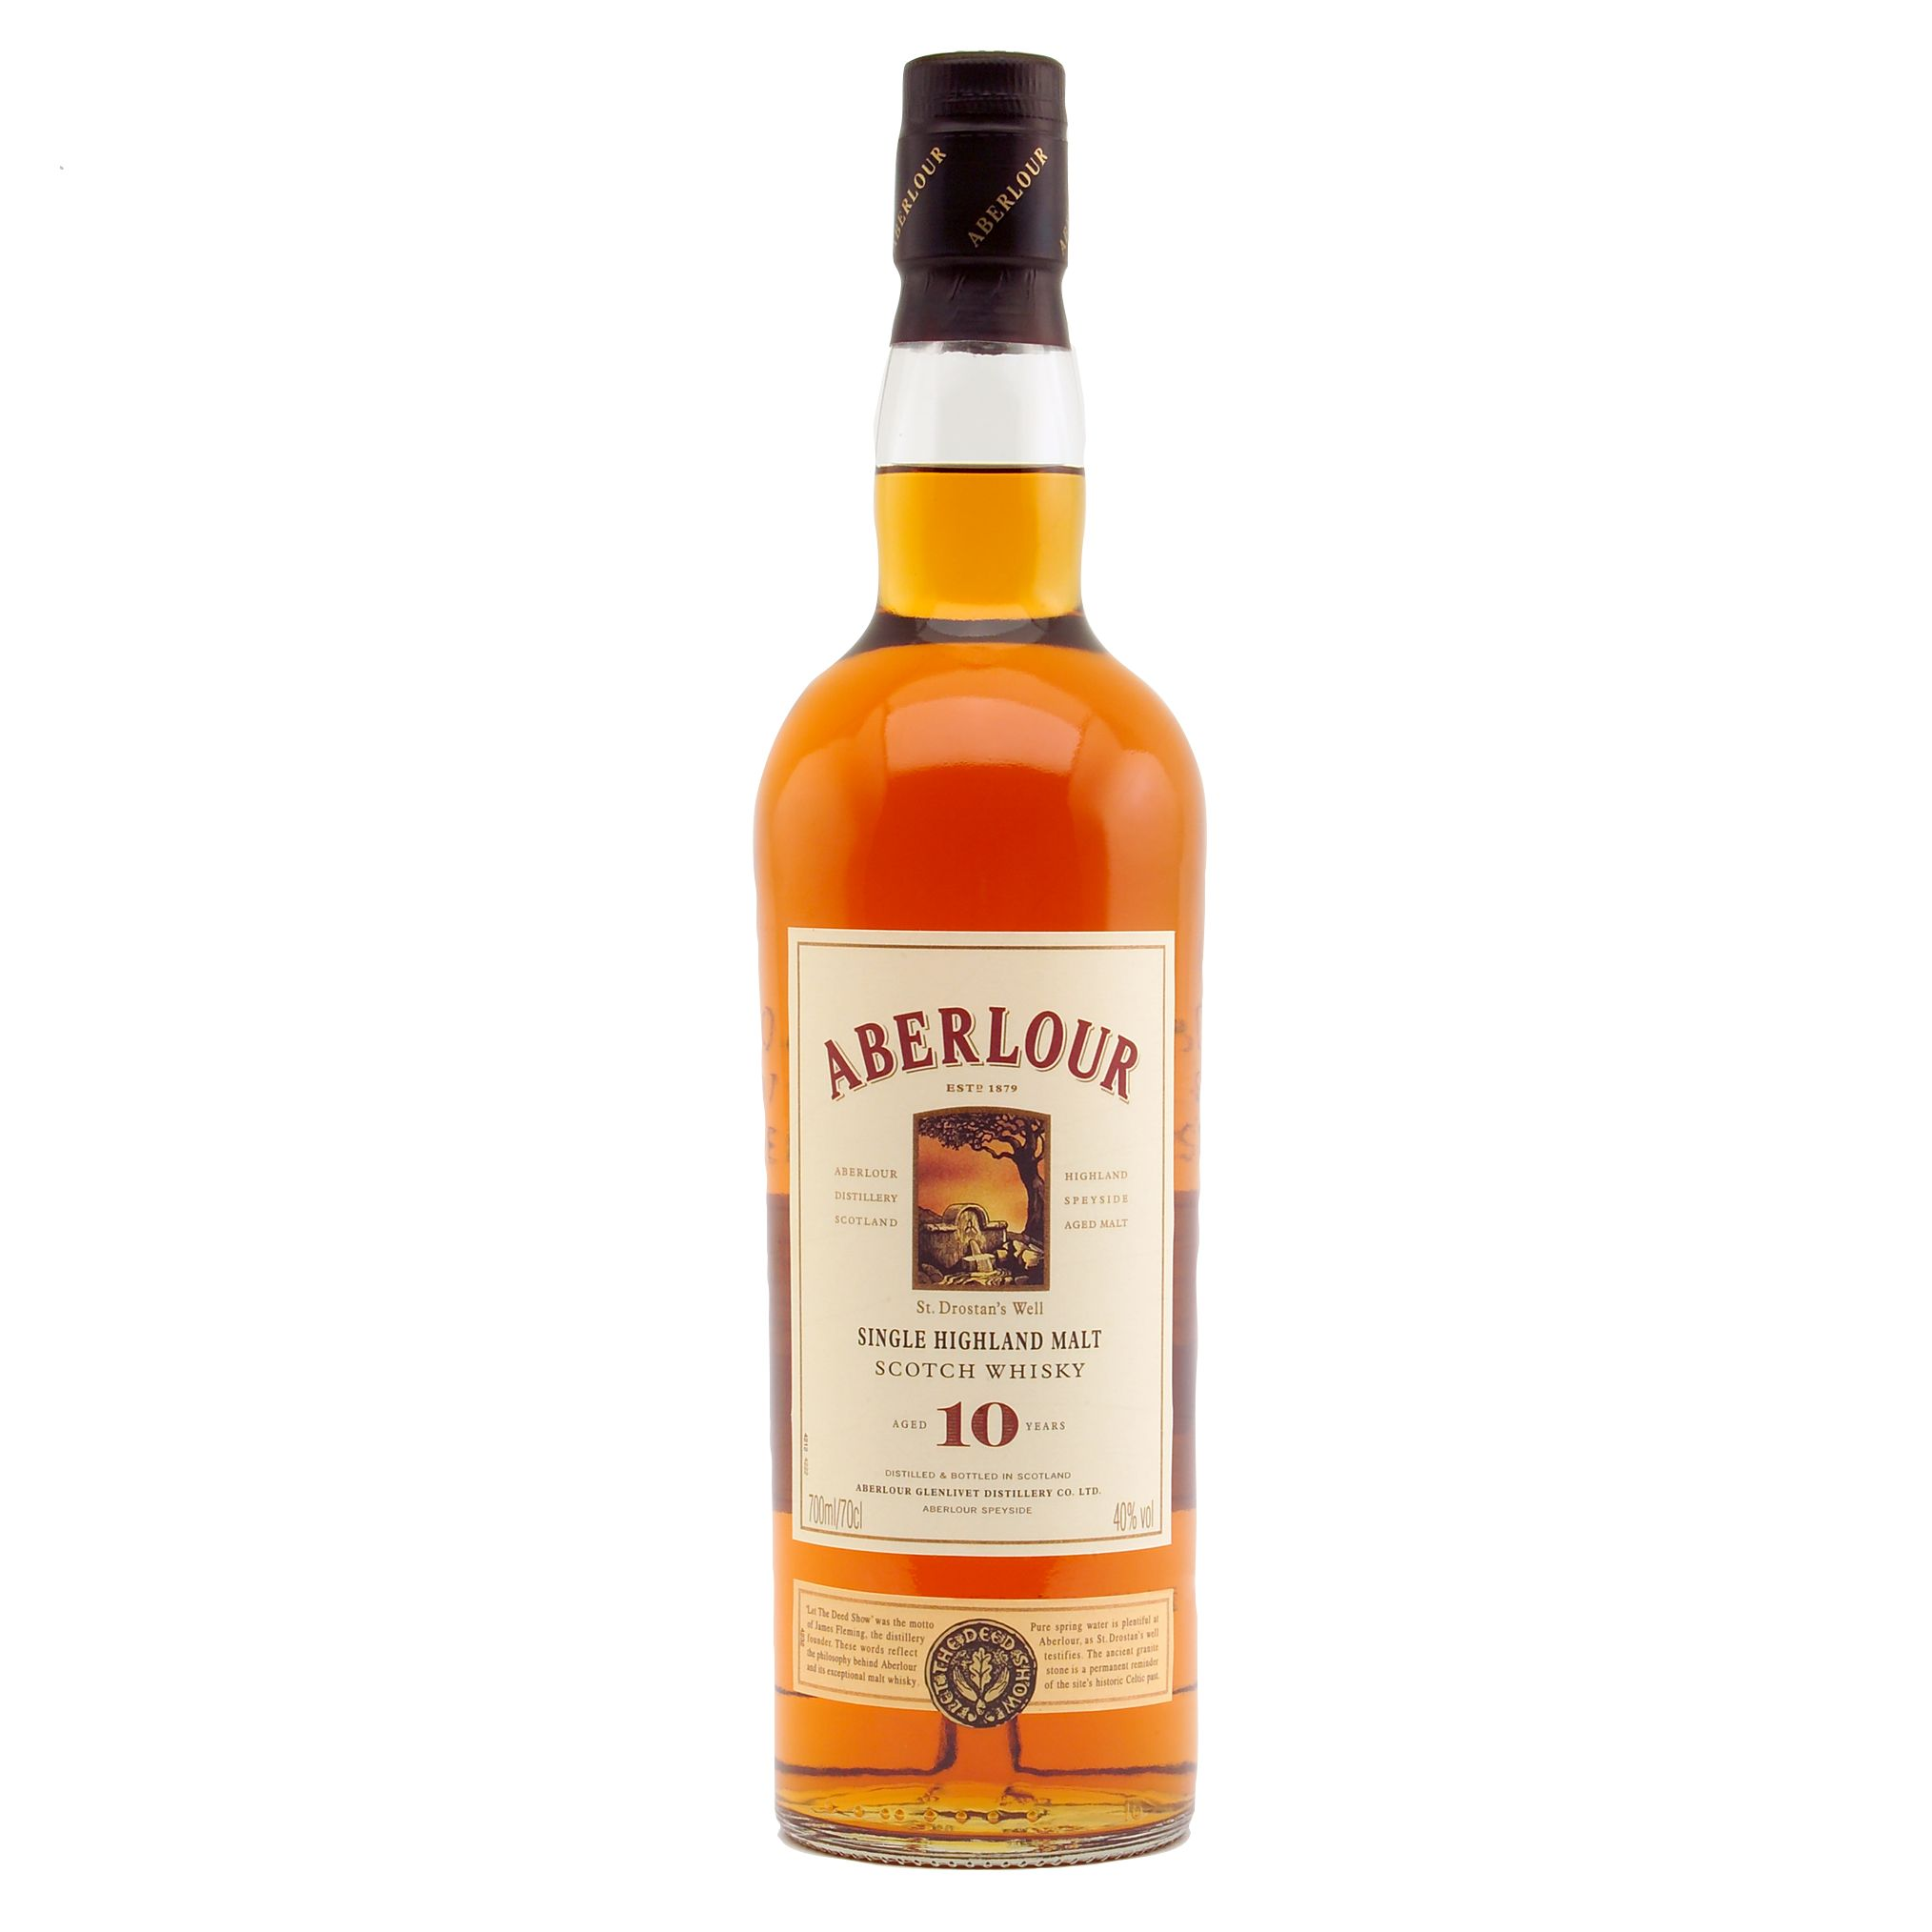 Aberlour 10 Year Old Speyside Malt Whisky